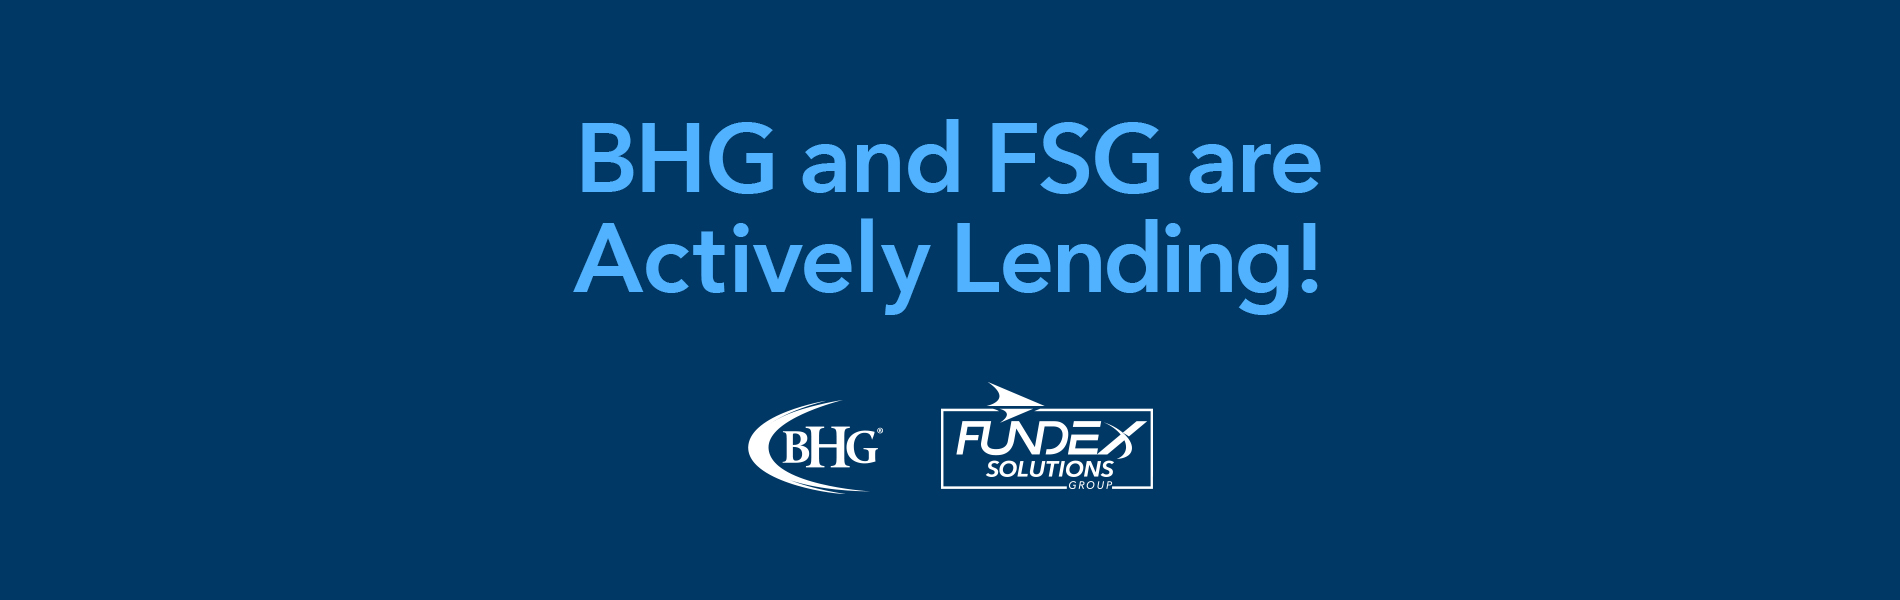 BHG and FSG are Actively Lending!